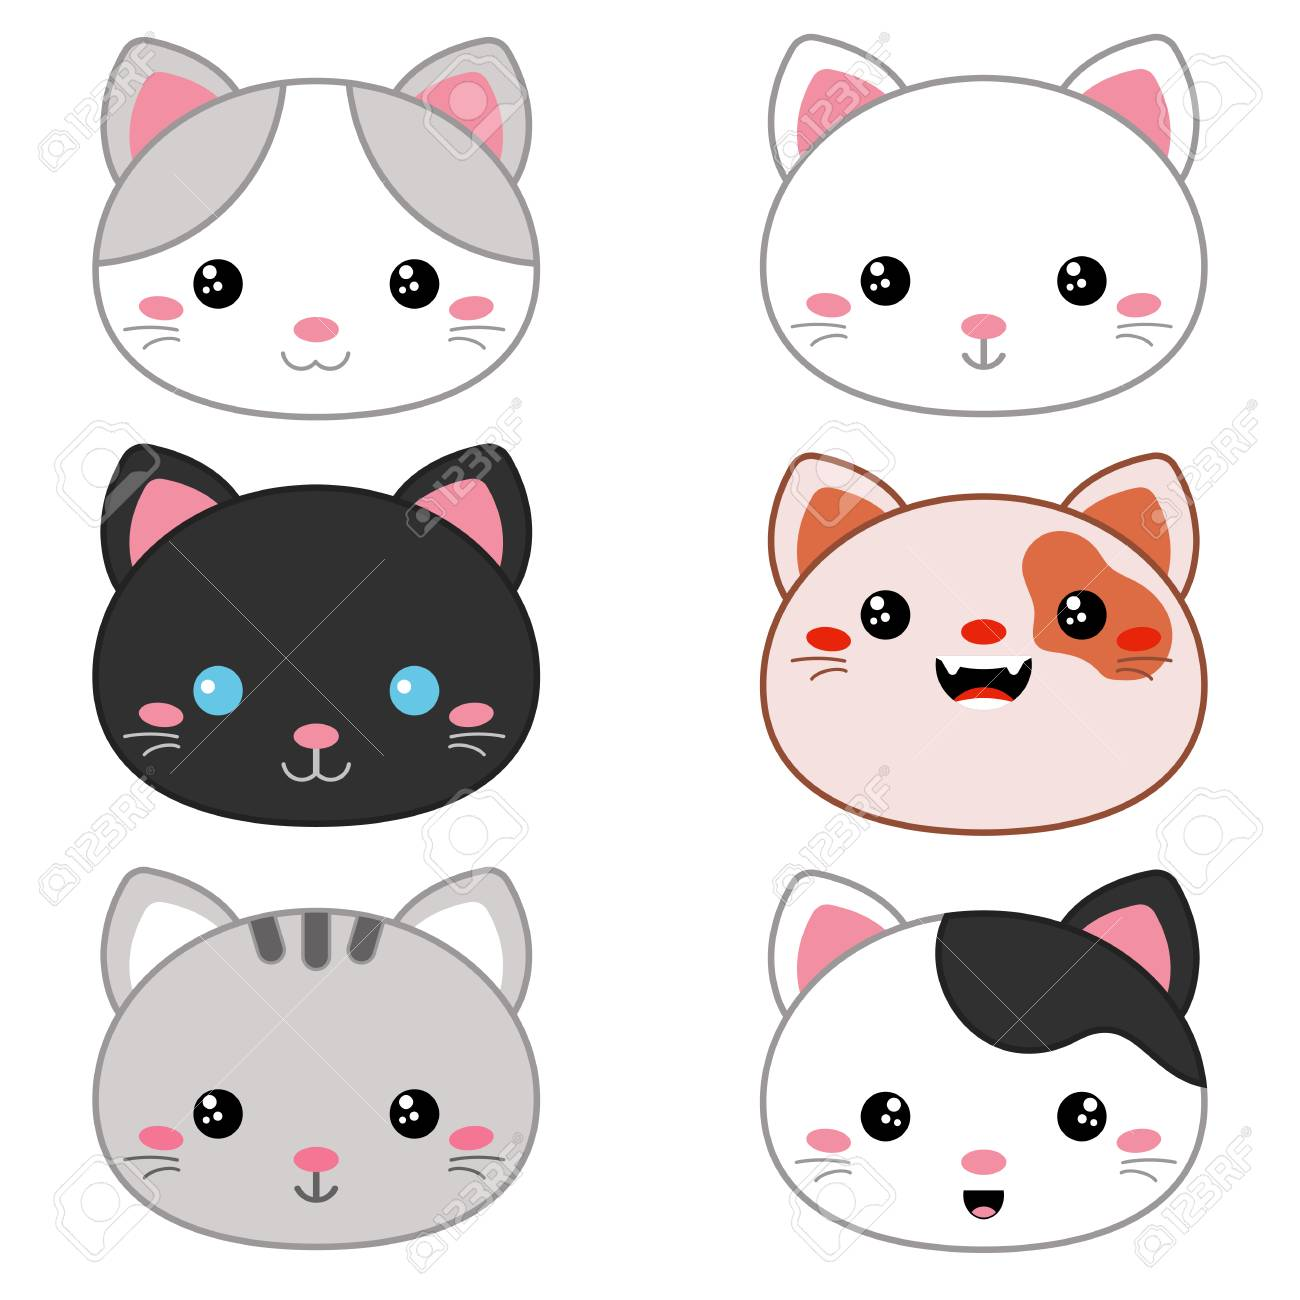 Set Of Cartoon Cute Cat Faces On White Background Royalty Free